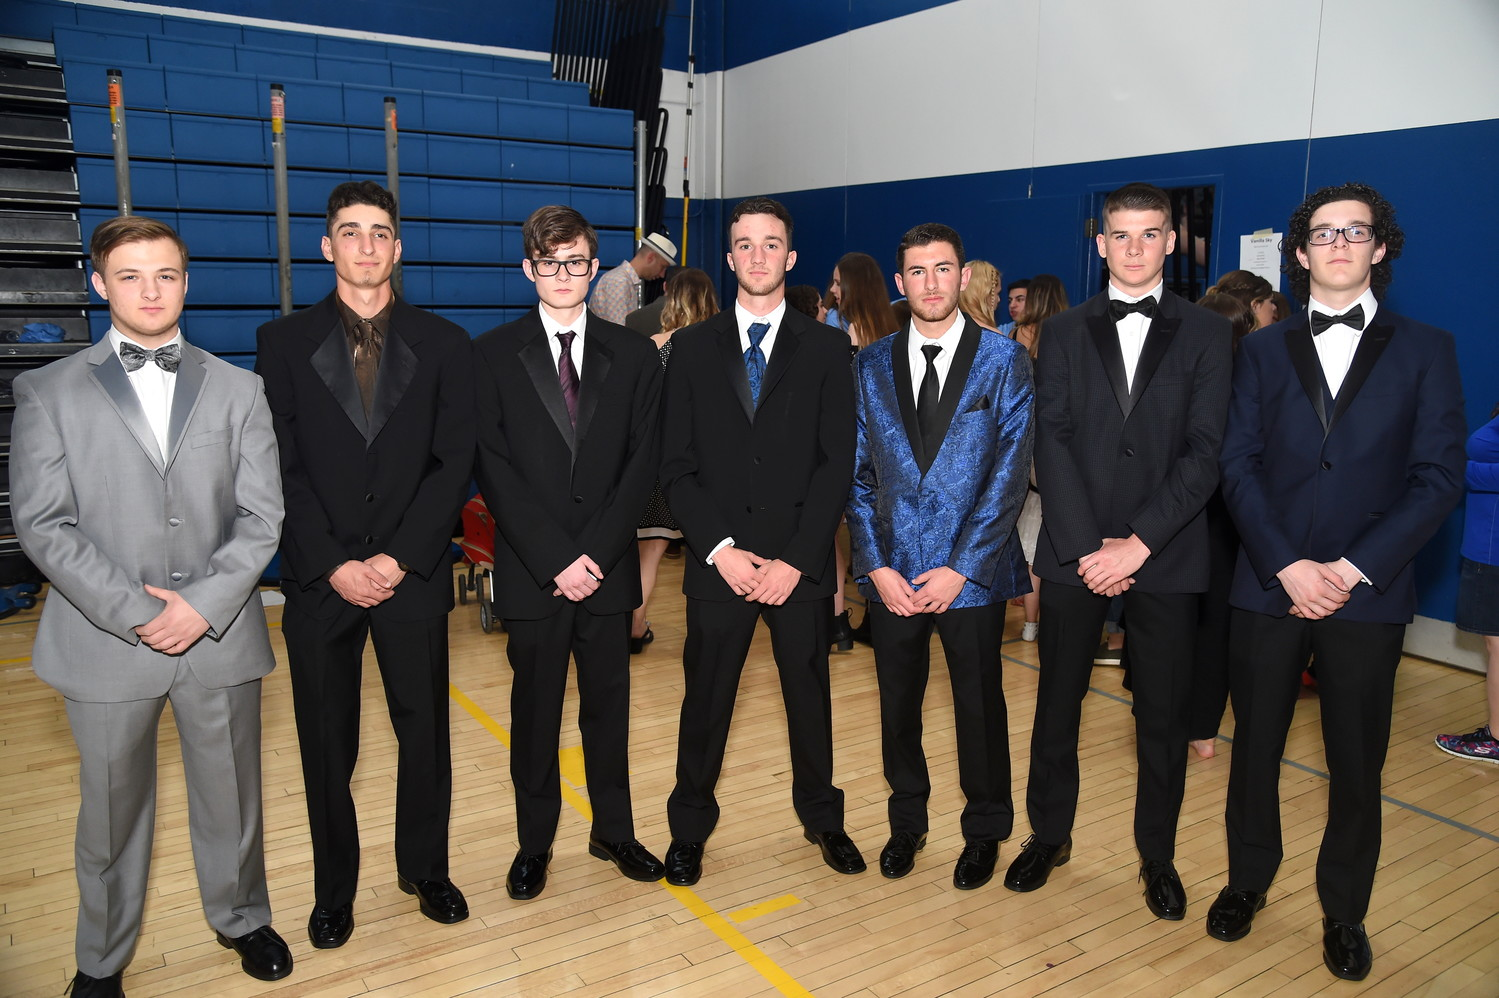 Senior gentlemen strutted their stuff at the fashion show. Pictured: Sean Immel, Jack Pugliano, James Muchs, Michael Pokorny, Jake Gedacht, James King and Michael Simmons.